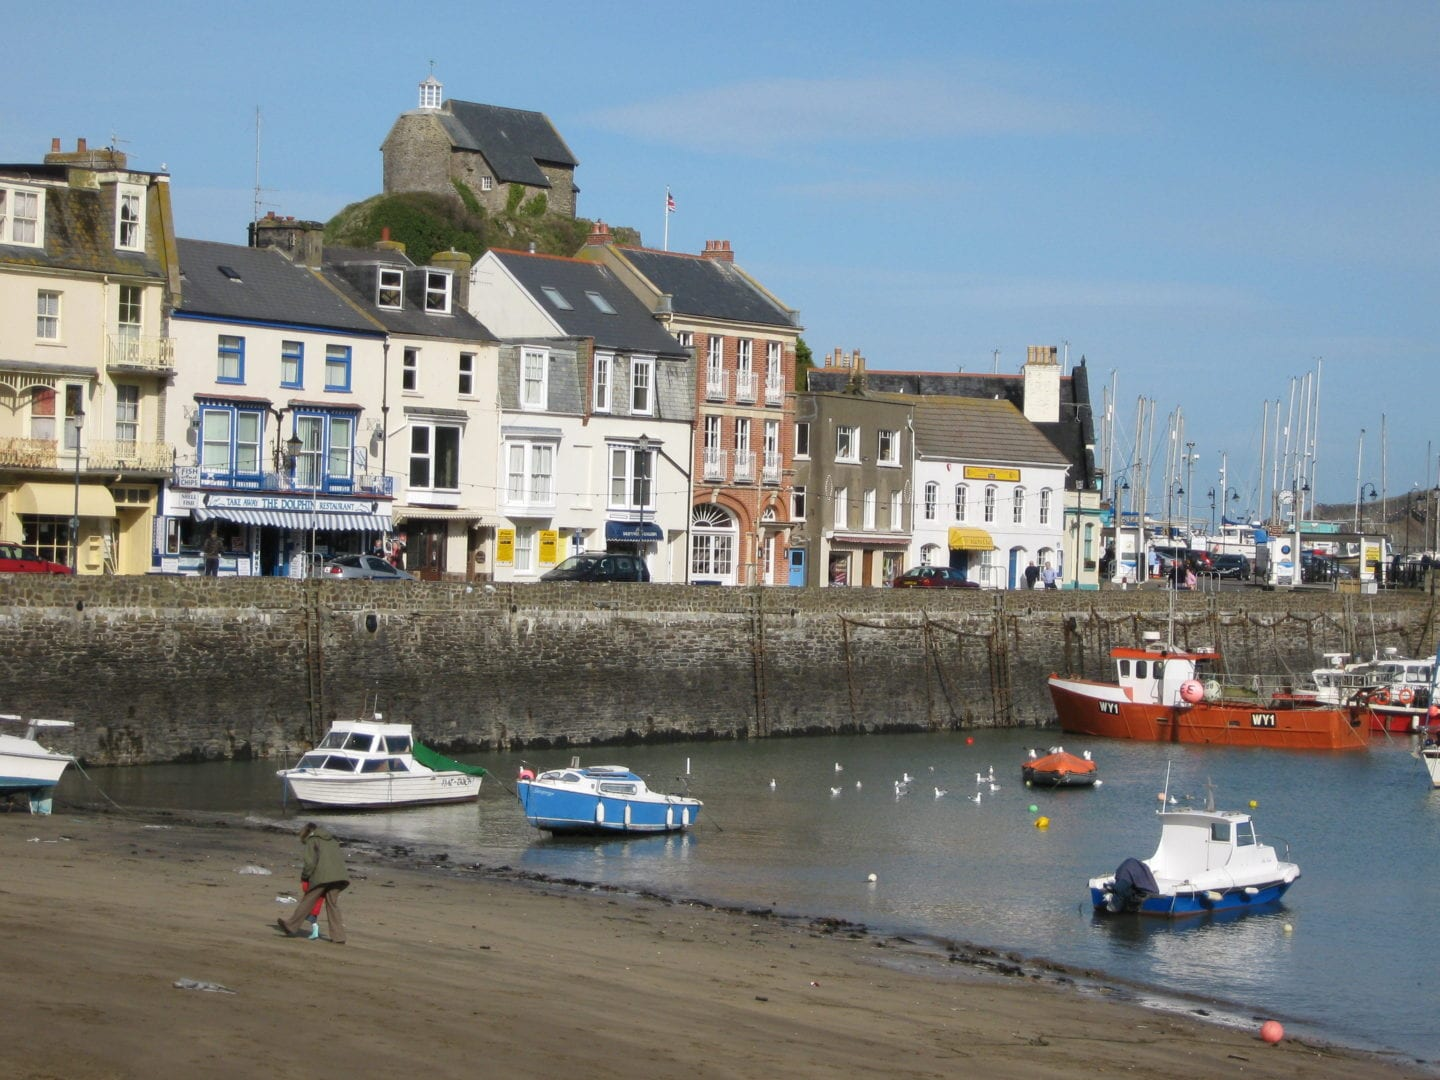 October half term at Illfracombe